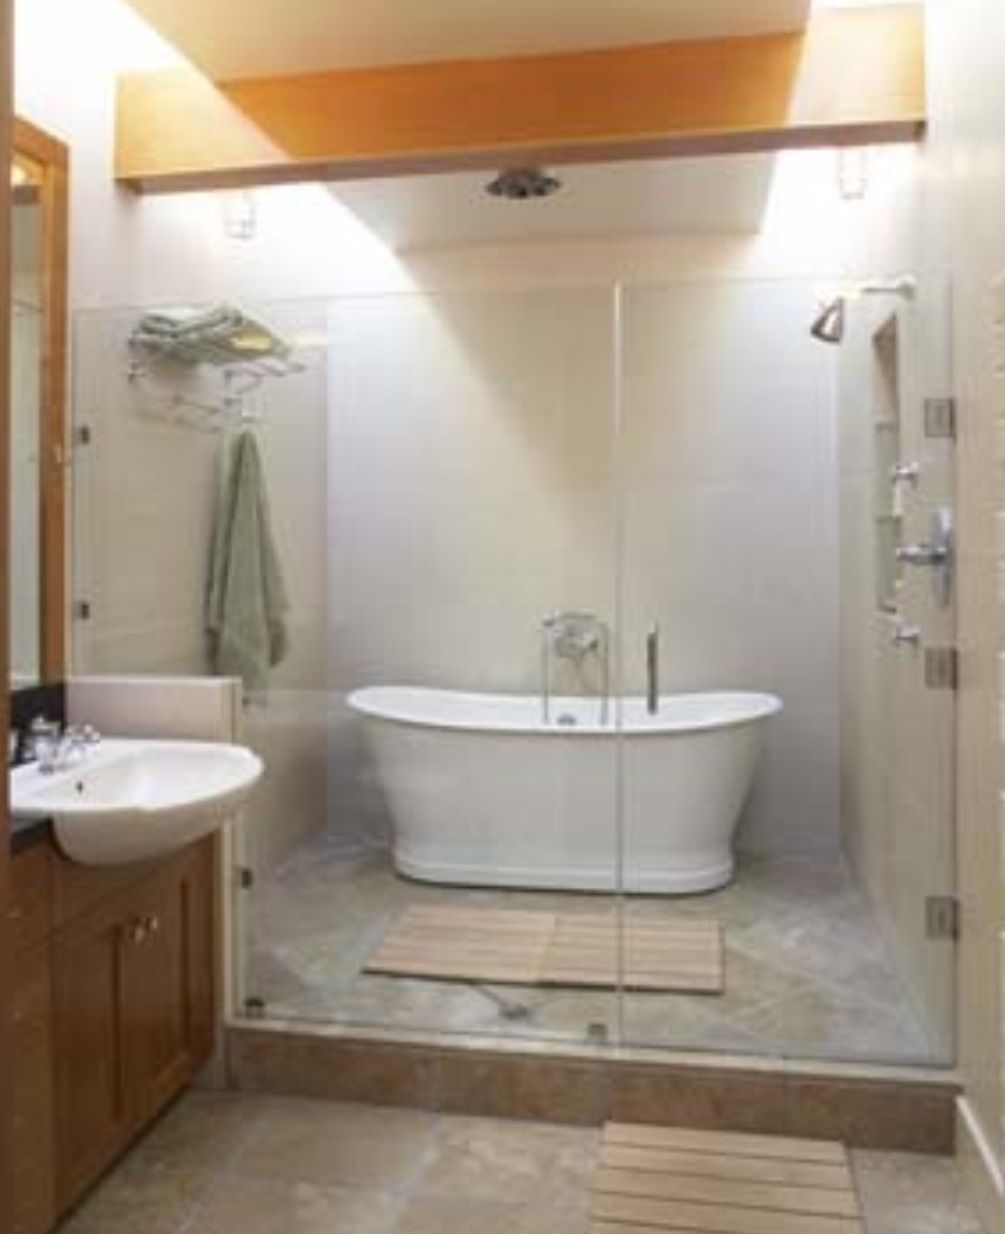 Shower tub wet room bathrooms pinterest wet rooms for Wet room or bathroom